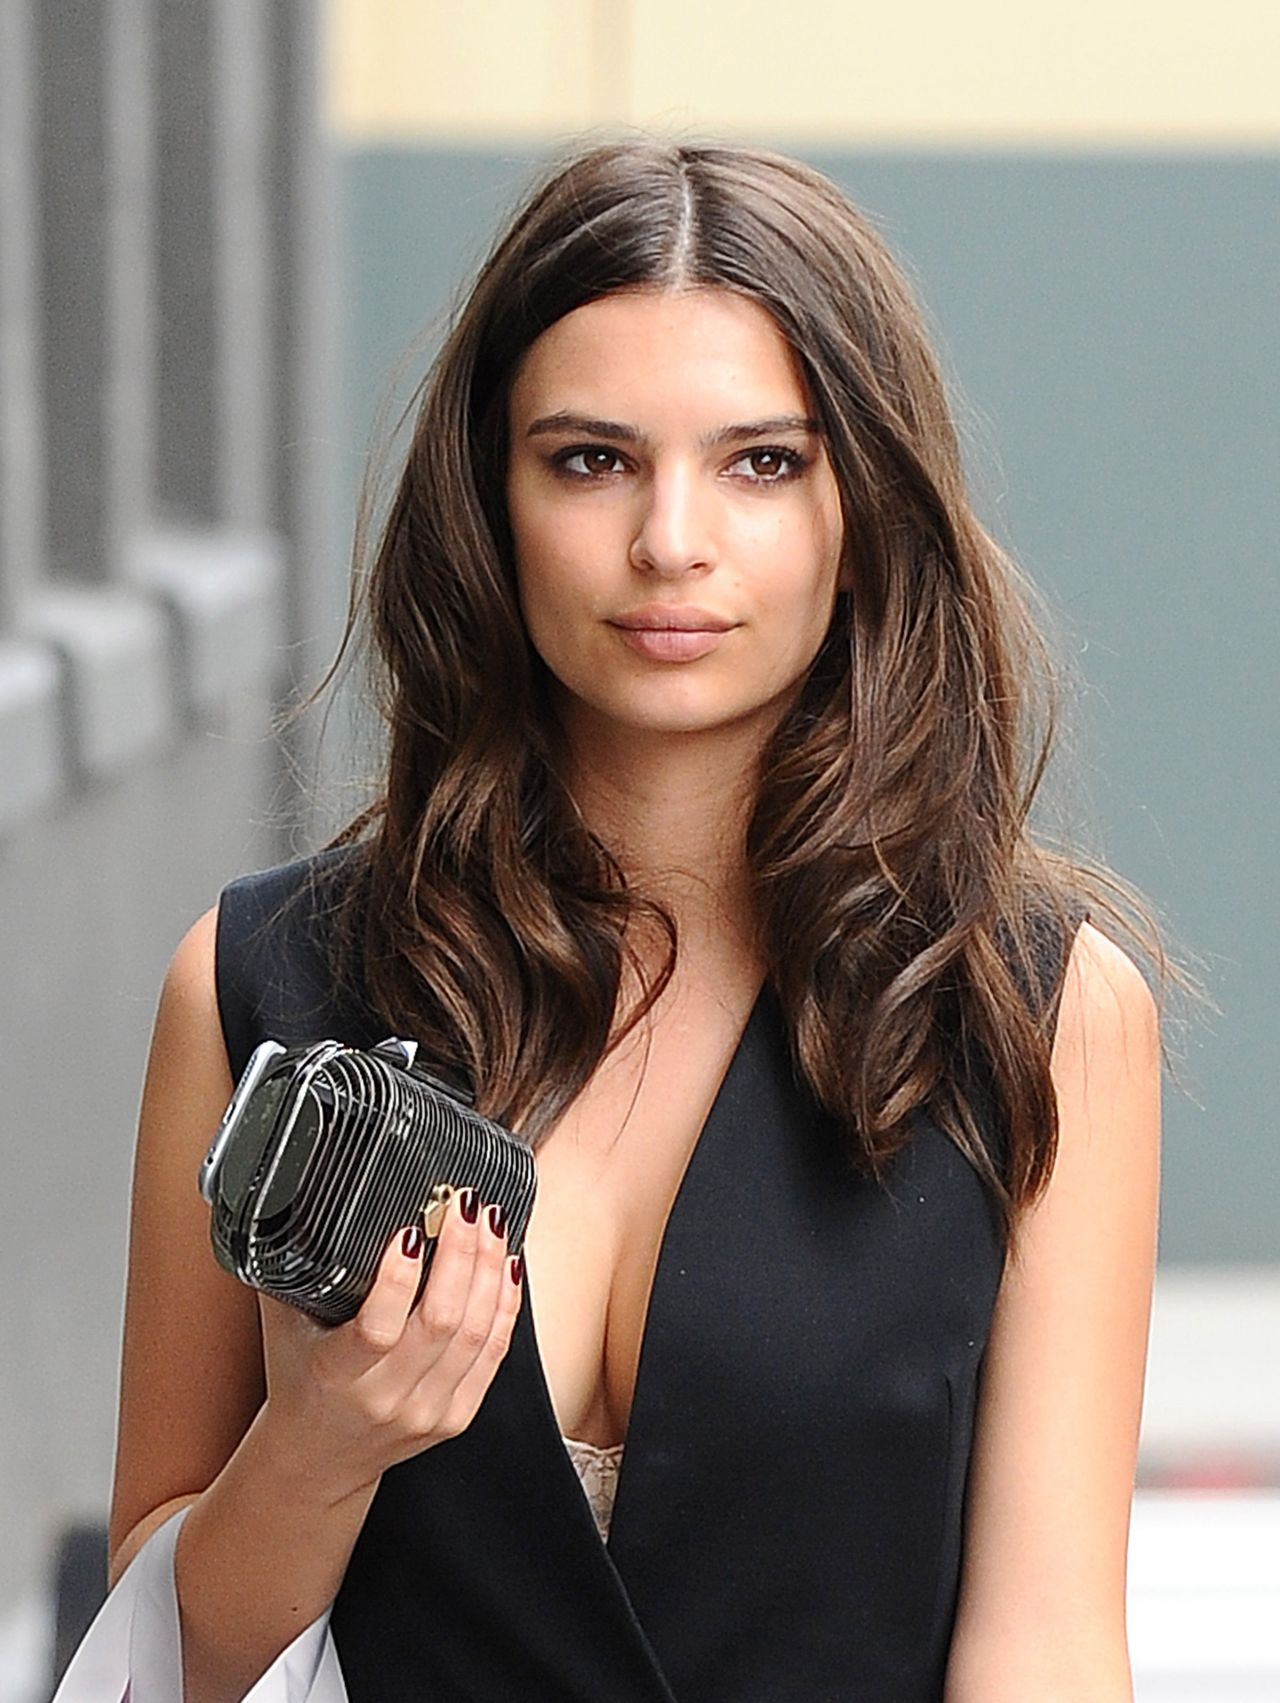 Emily Ratajkowski Latest Photos Celebmafia